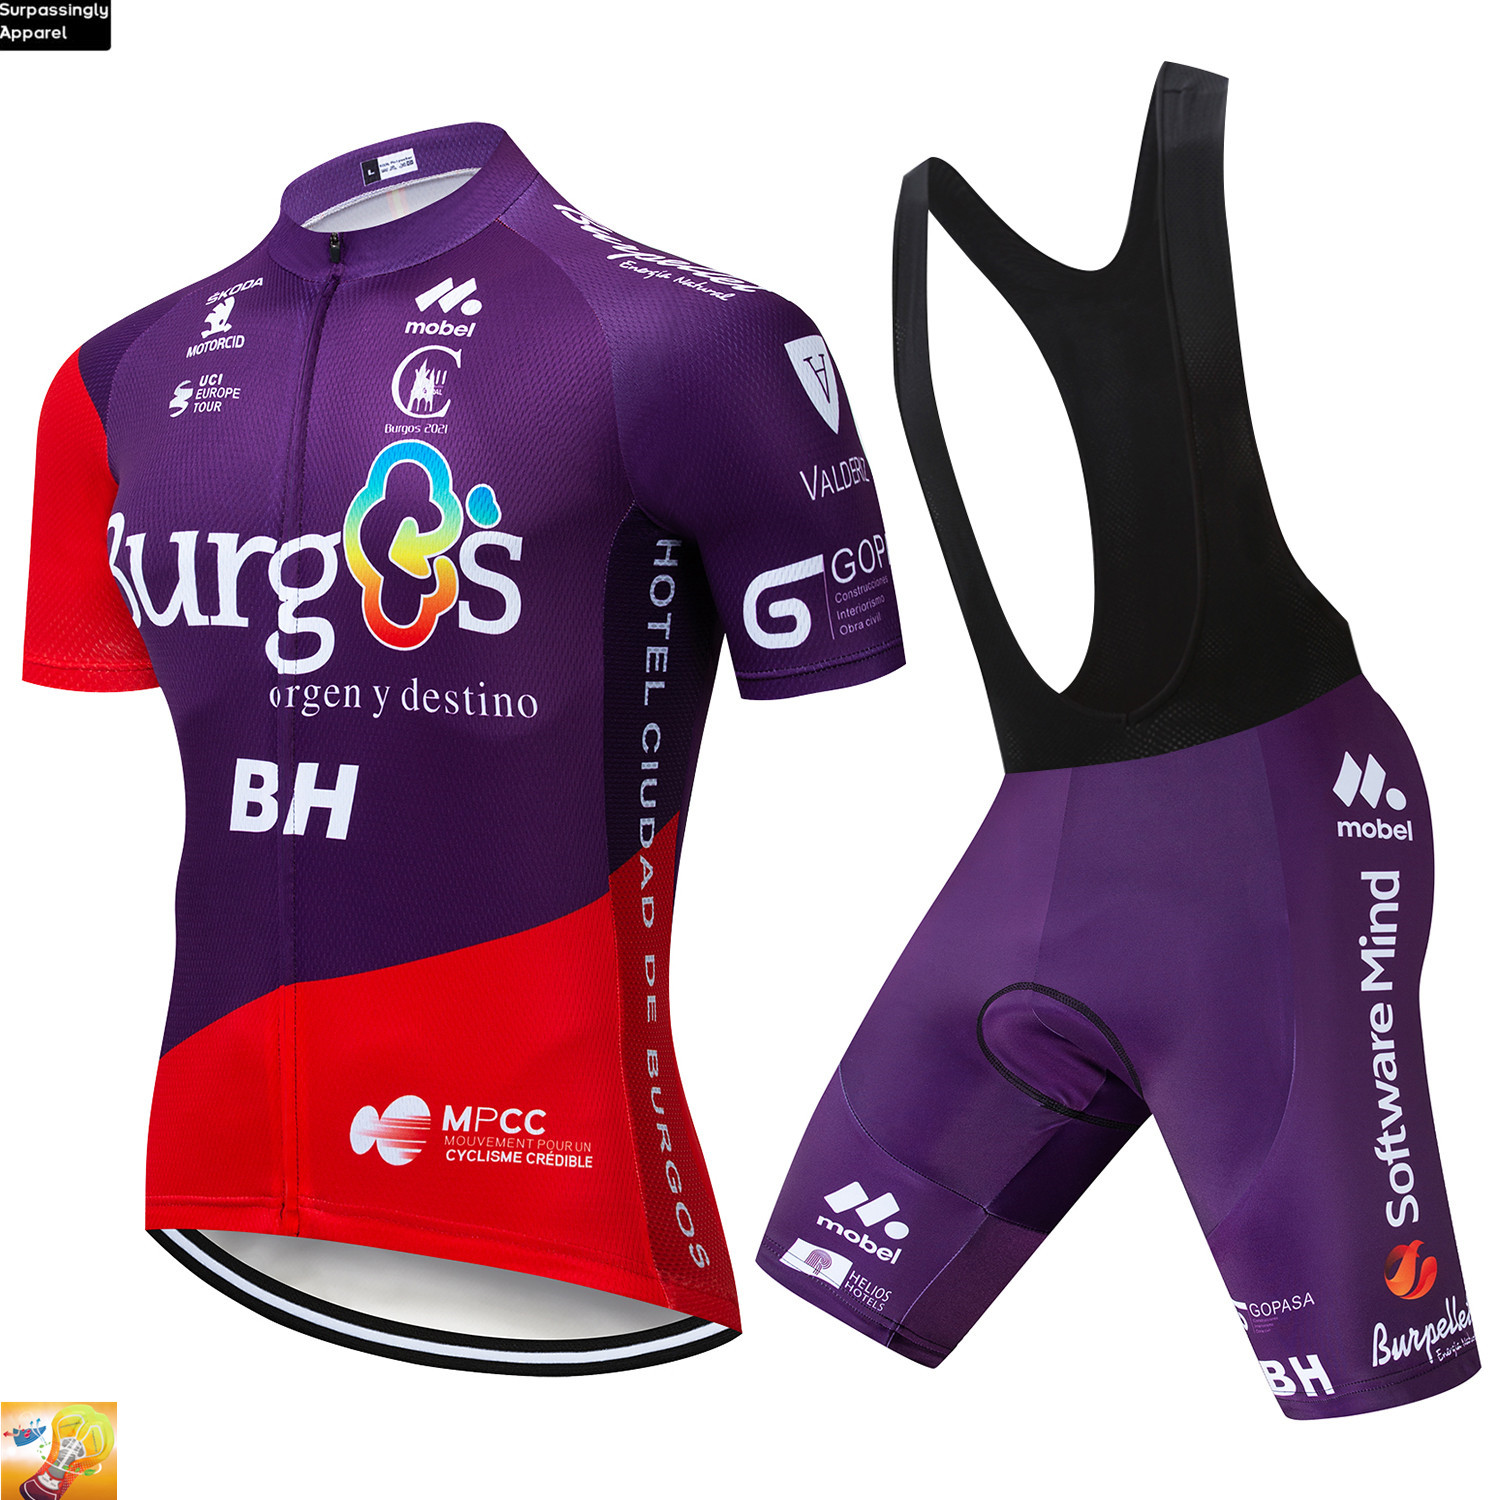 2019 Burg Cycling Team Jersey 16D <font><b>Bike</b></font> Shorts Set BH Purple Ropa Ciclismo Mens Summer Quick Dry Pro Bicycling Maillot Pants <font><b>Wear</b></font> image